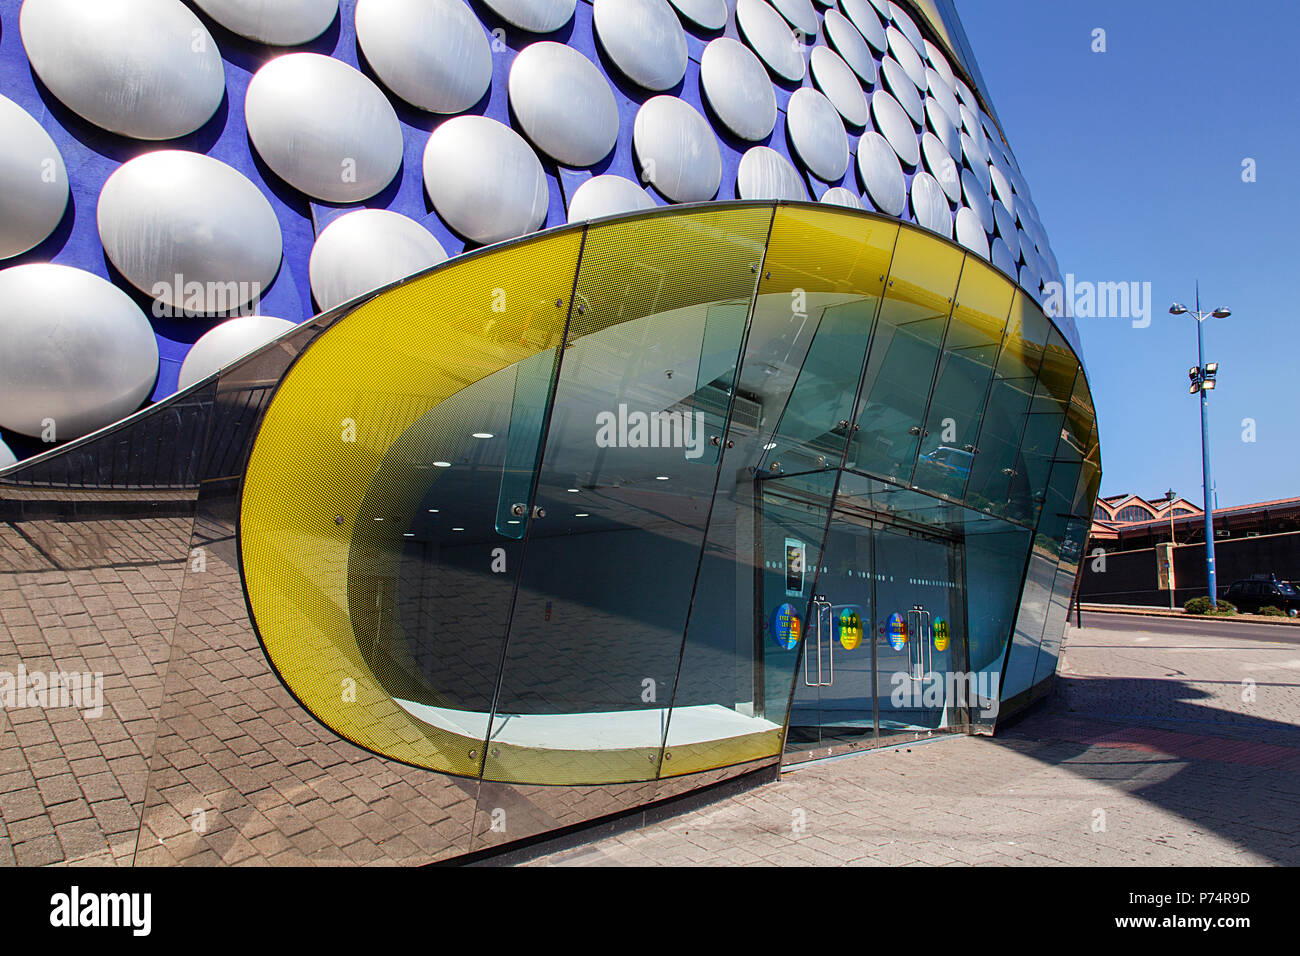 Birmingham, UK: June 29, 2018: Side view of Selfridges Department Store in Park Street - part of the Bullring Shopping Centre. - Stock Image